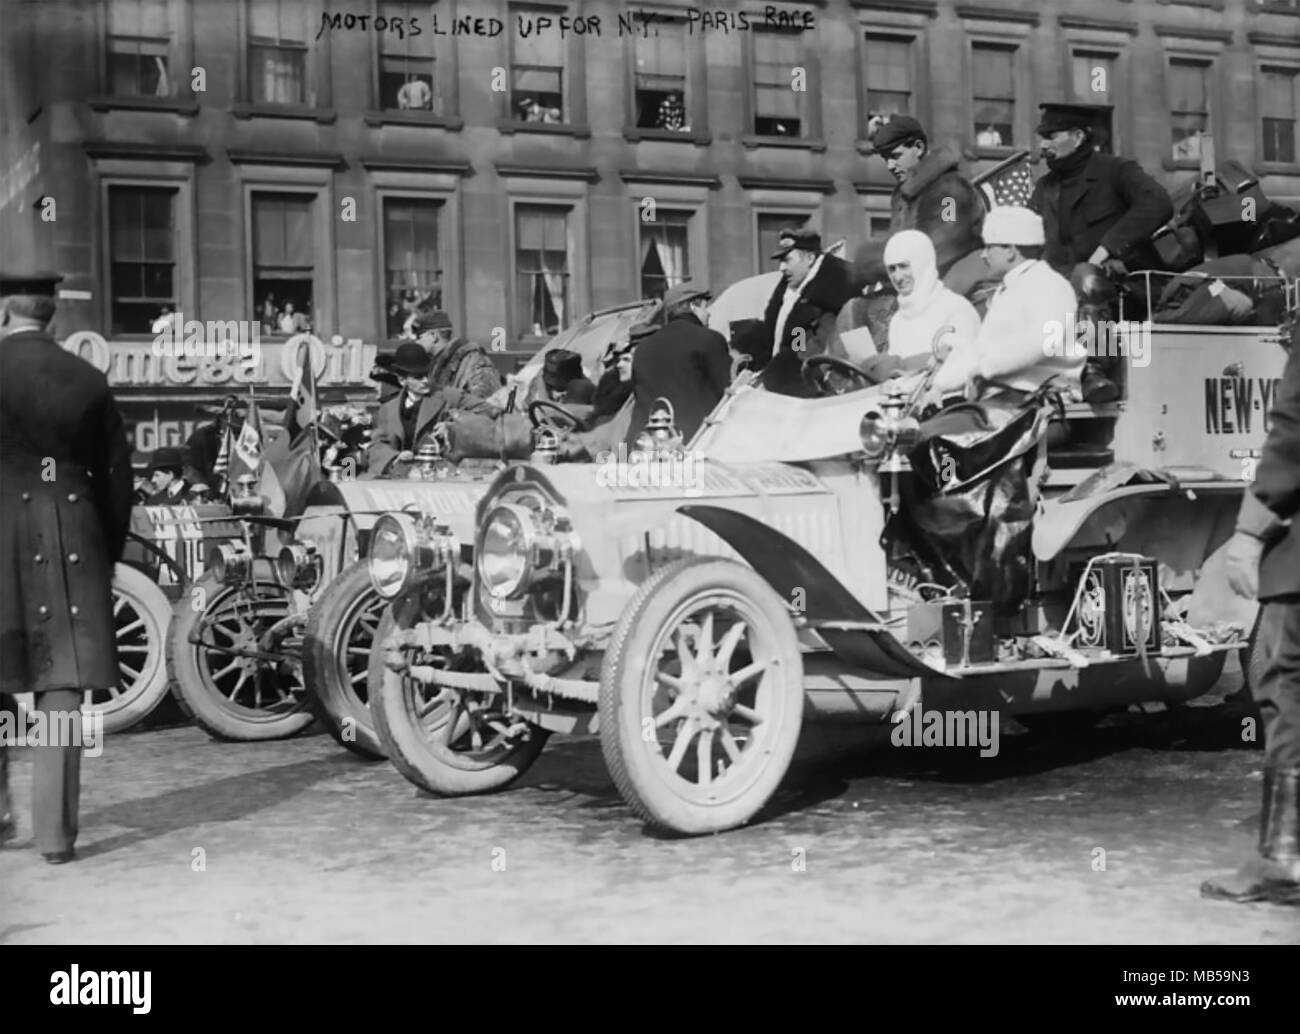 1908 NEW YORK TO PARIS AUTO RACE. Cars lined up at the start in Times Square on 12 February with a De Dion-Bouton at right - Stock Image